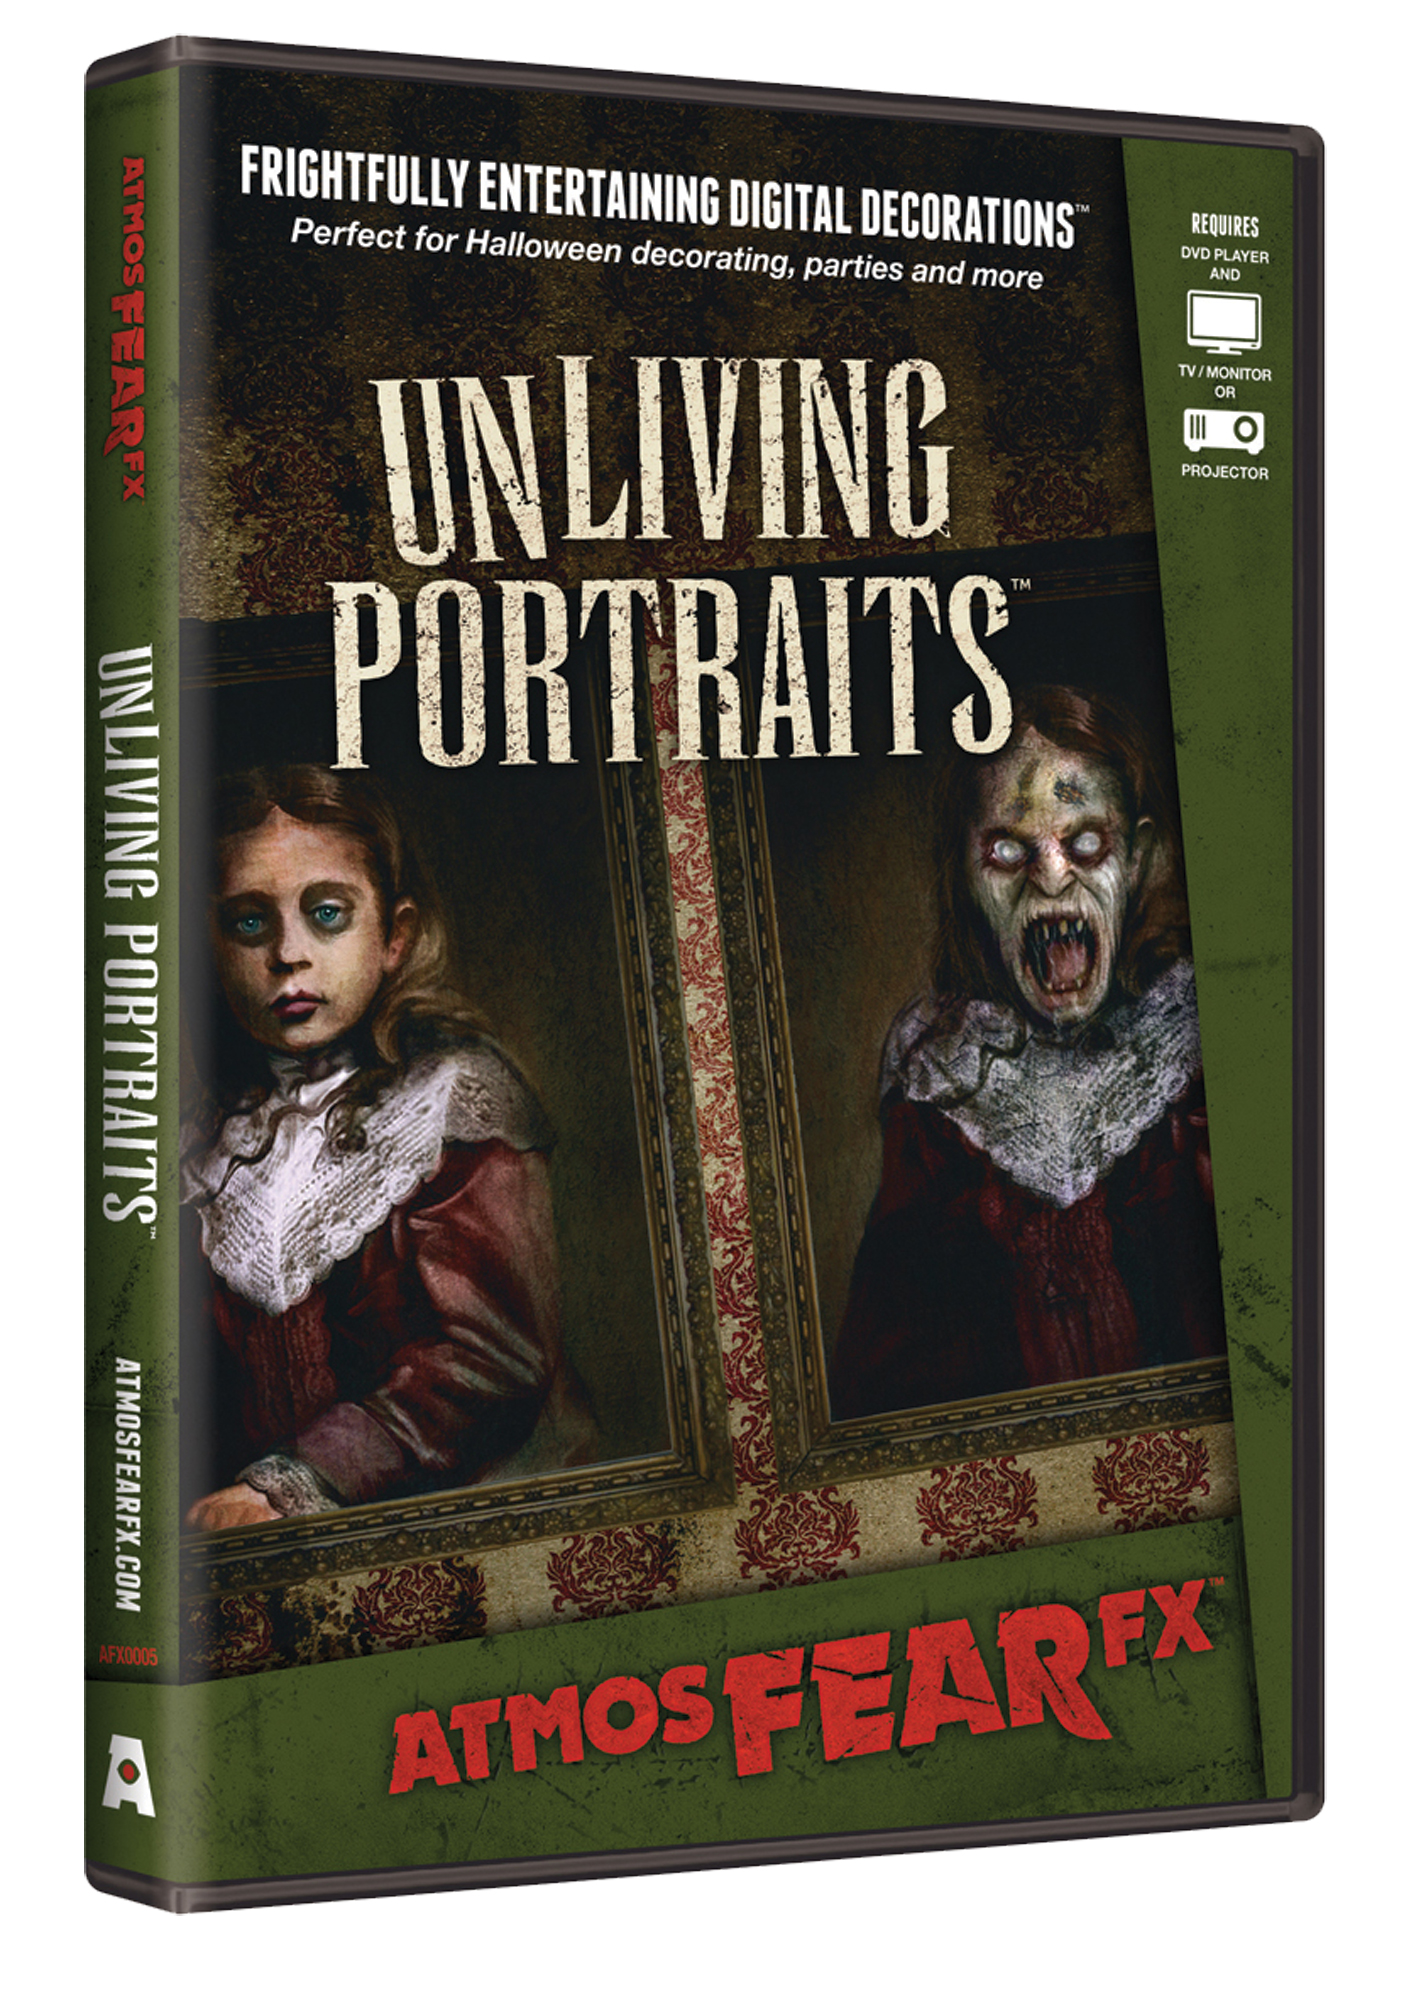 Featured Image for AtmosfearFX Unliving Portraits